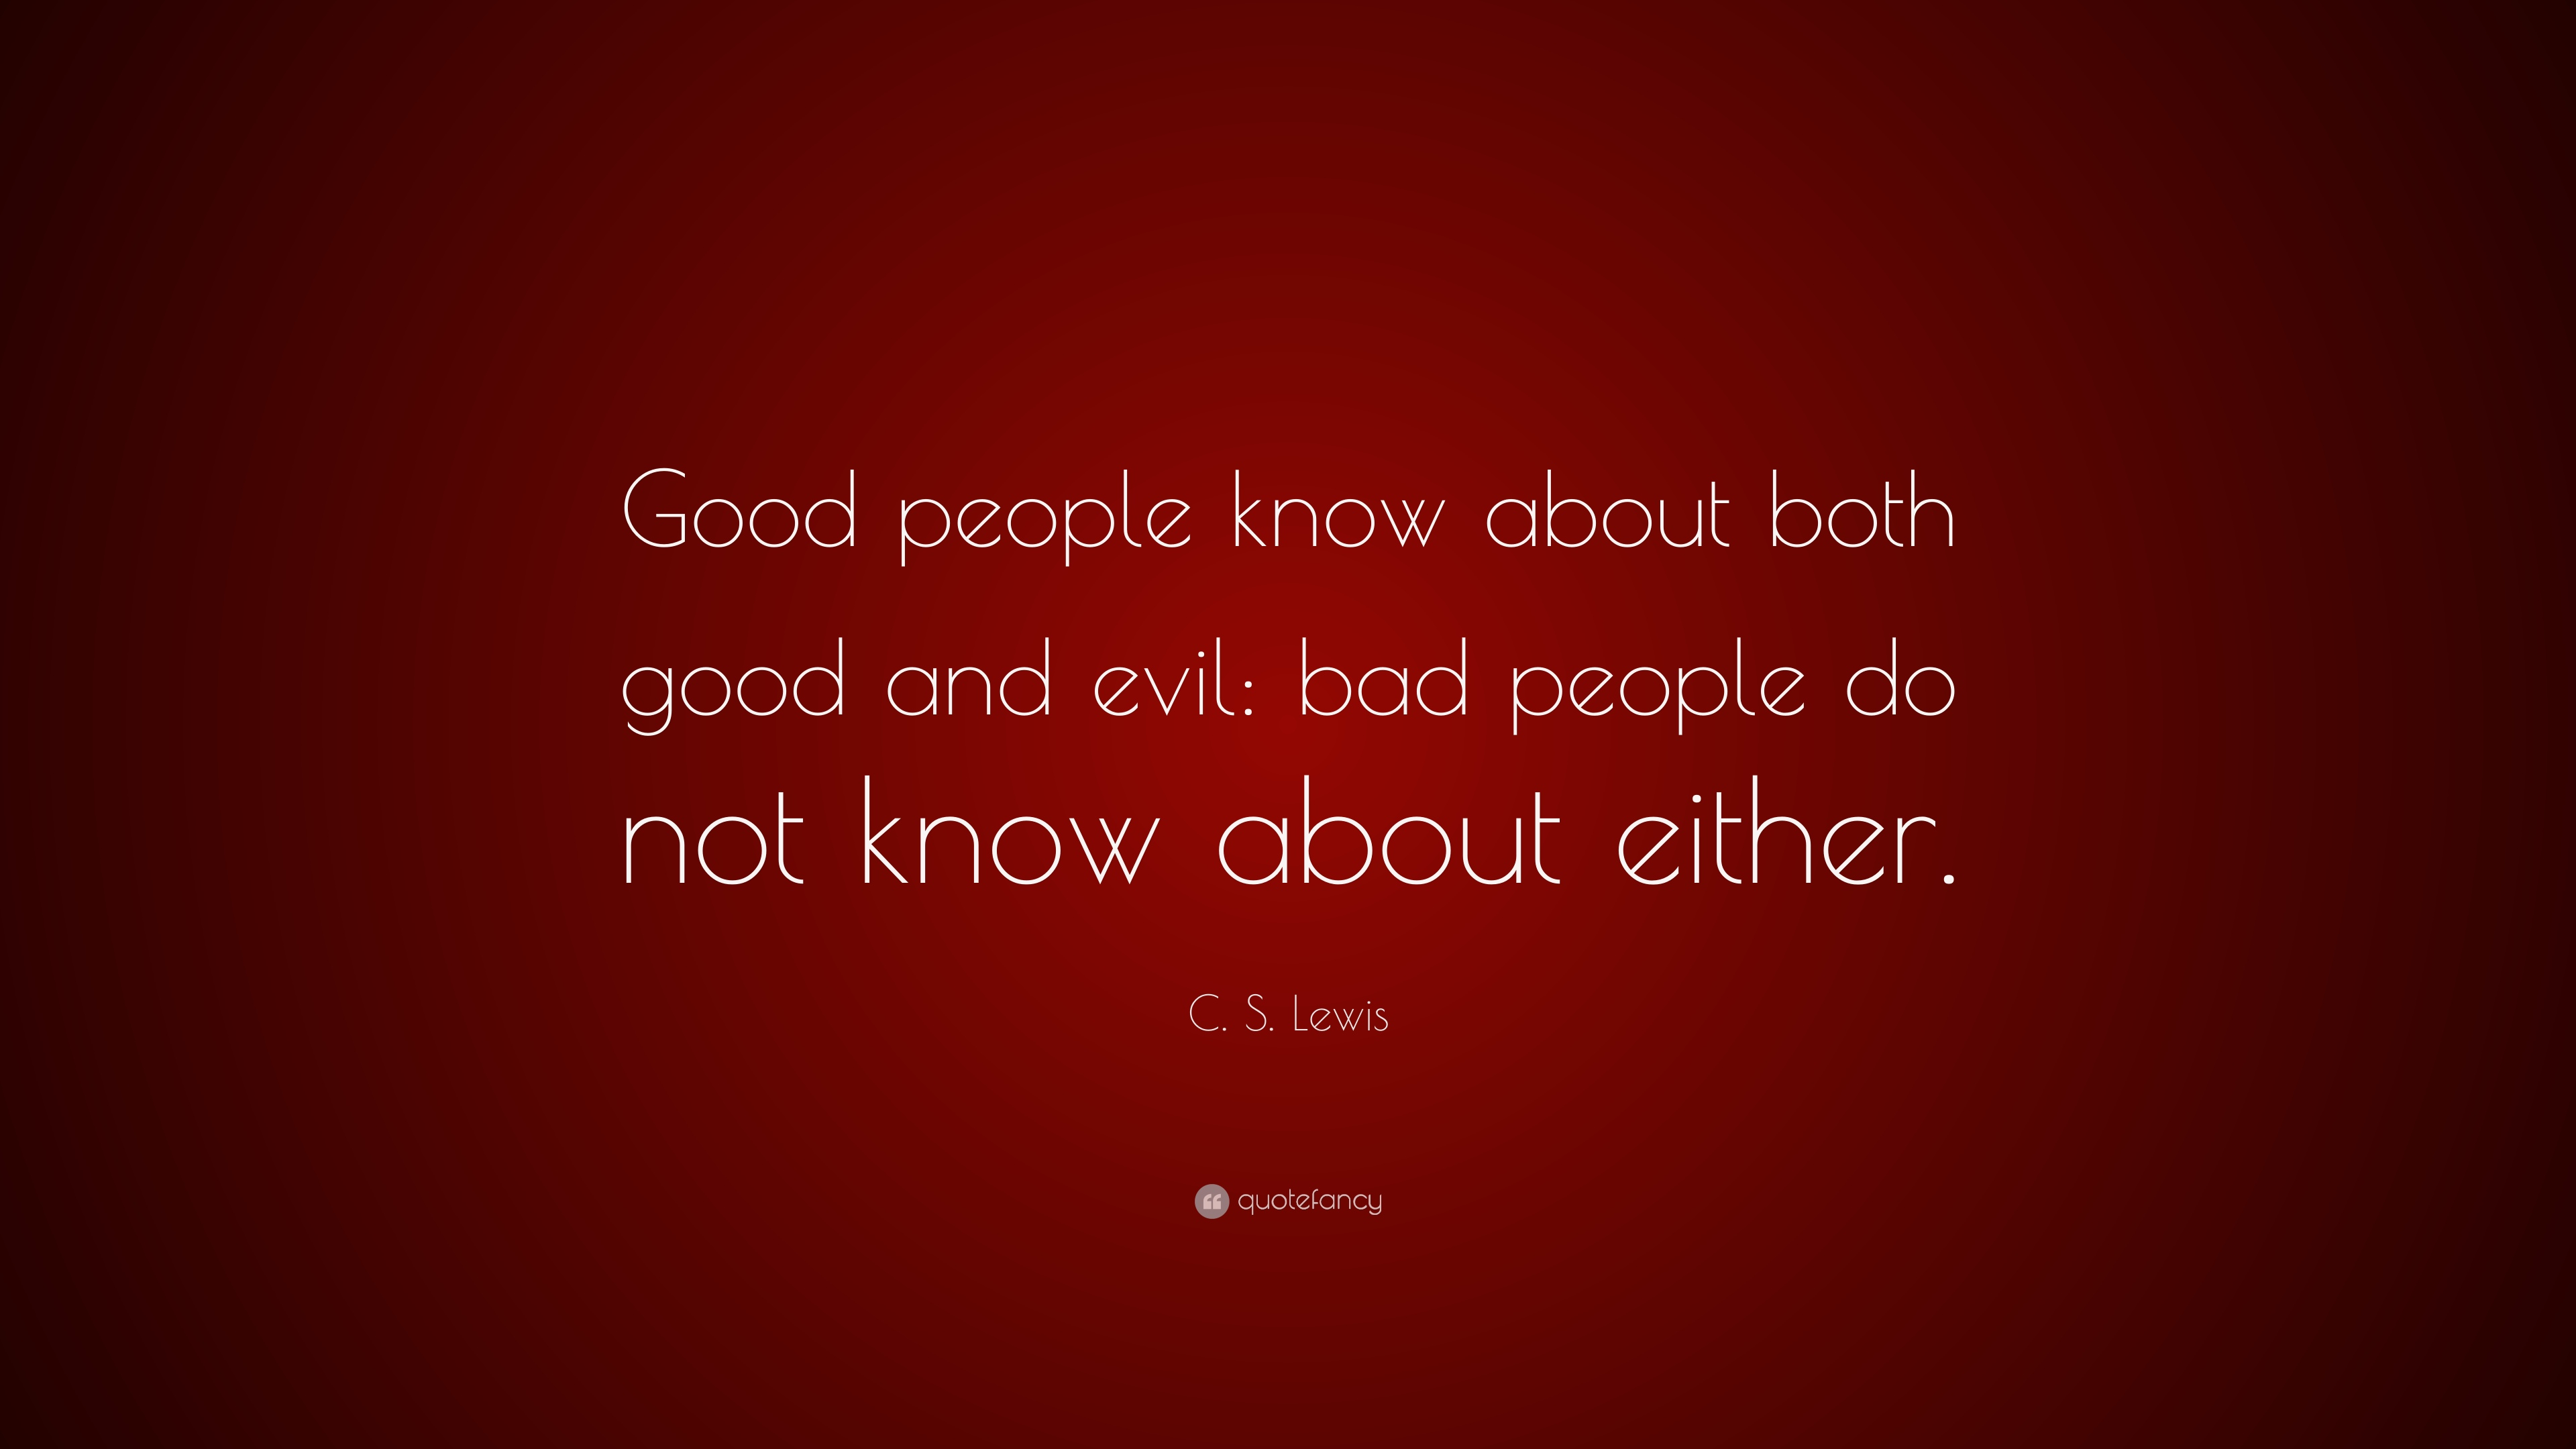 C S Lewis Quote Good People Know About Both Good And Evil Bad